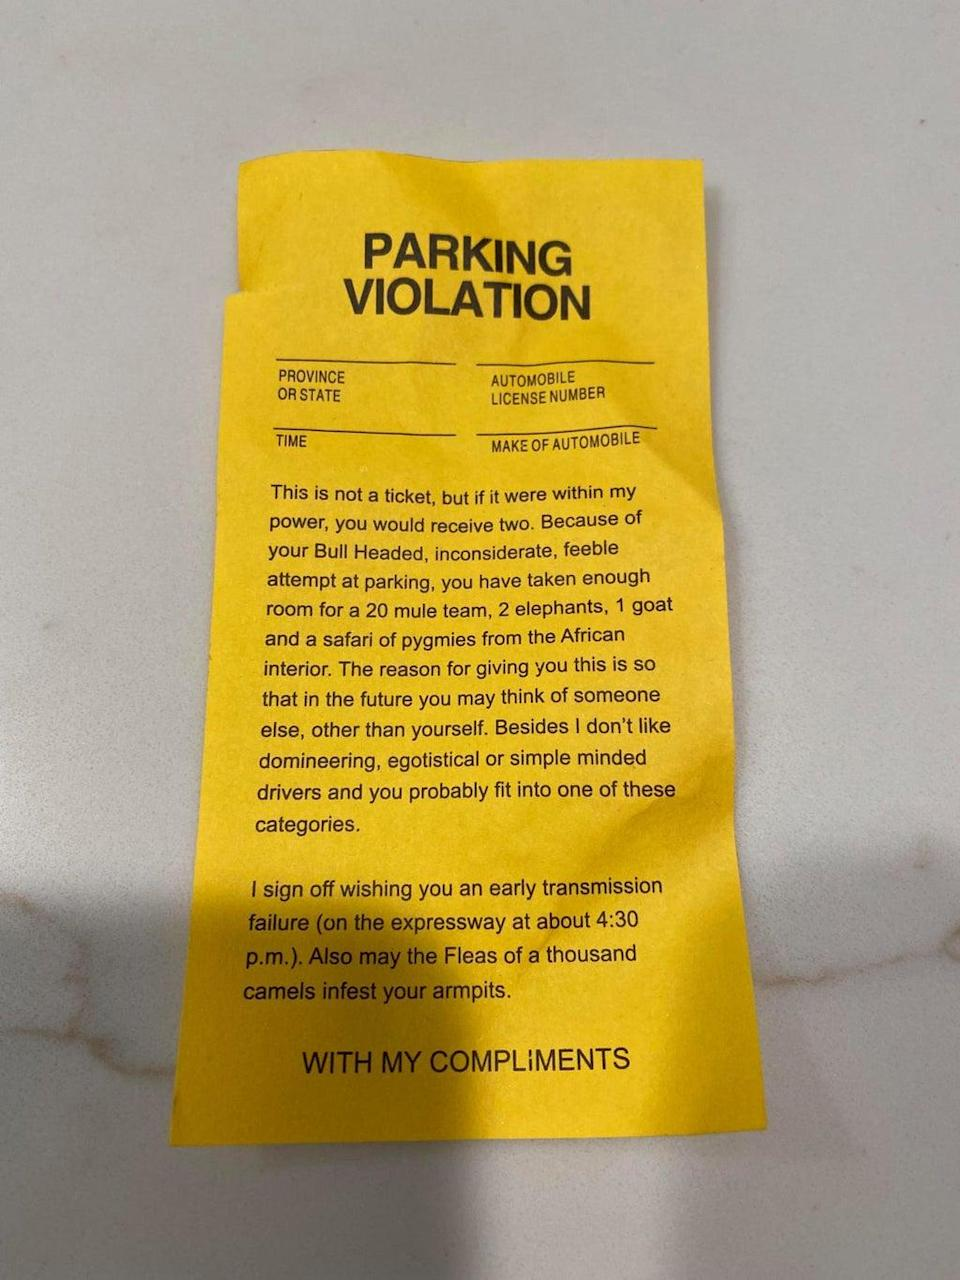 Tricia Proefrock discovered this note on her car. (Tricia Proefrock)